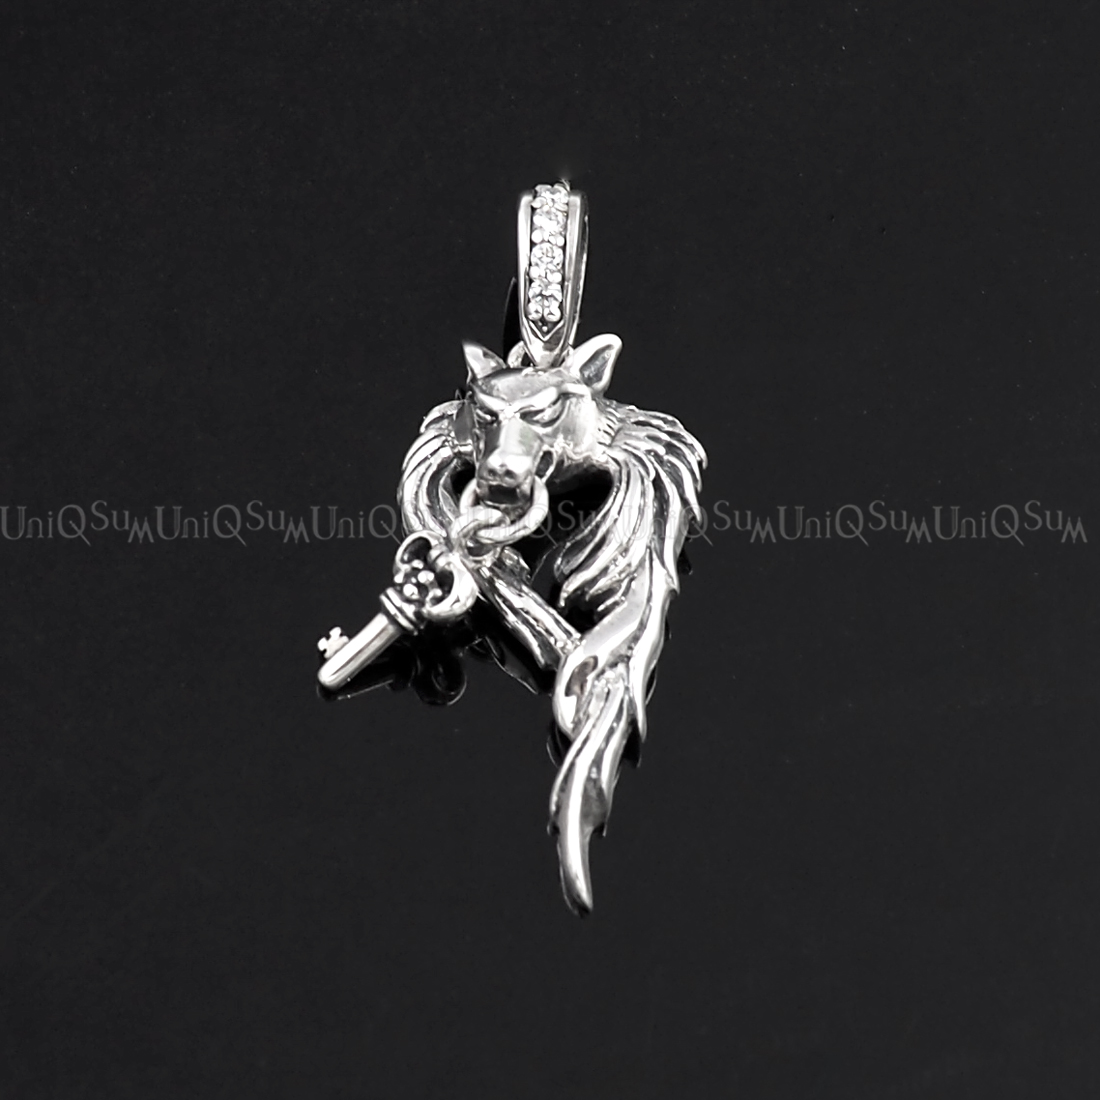 925 sterling silver wolf pendant with dangling key uniqsum wolf pendant key wolf 925 sterling silver pendants for mens necklaces key charm biker jewelry mozeypictures Image collections